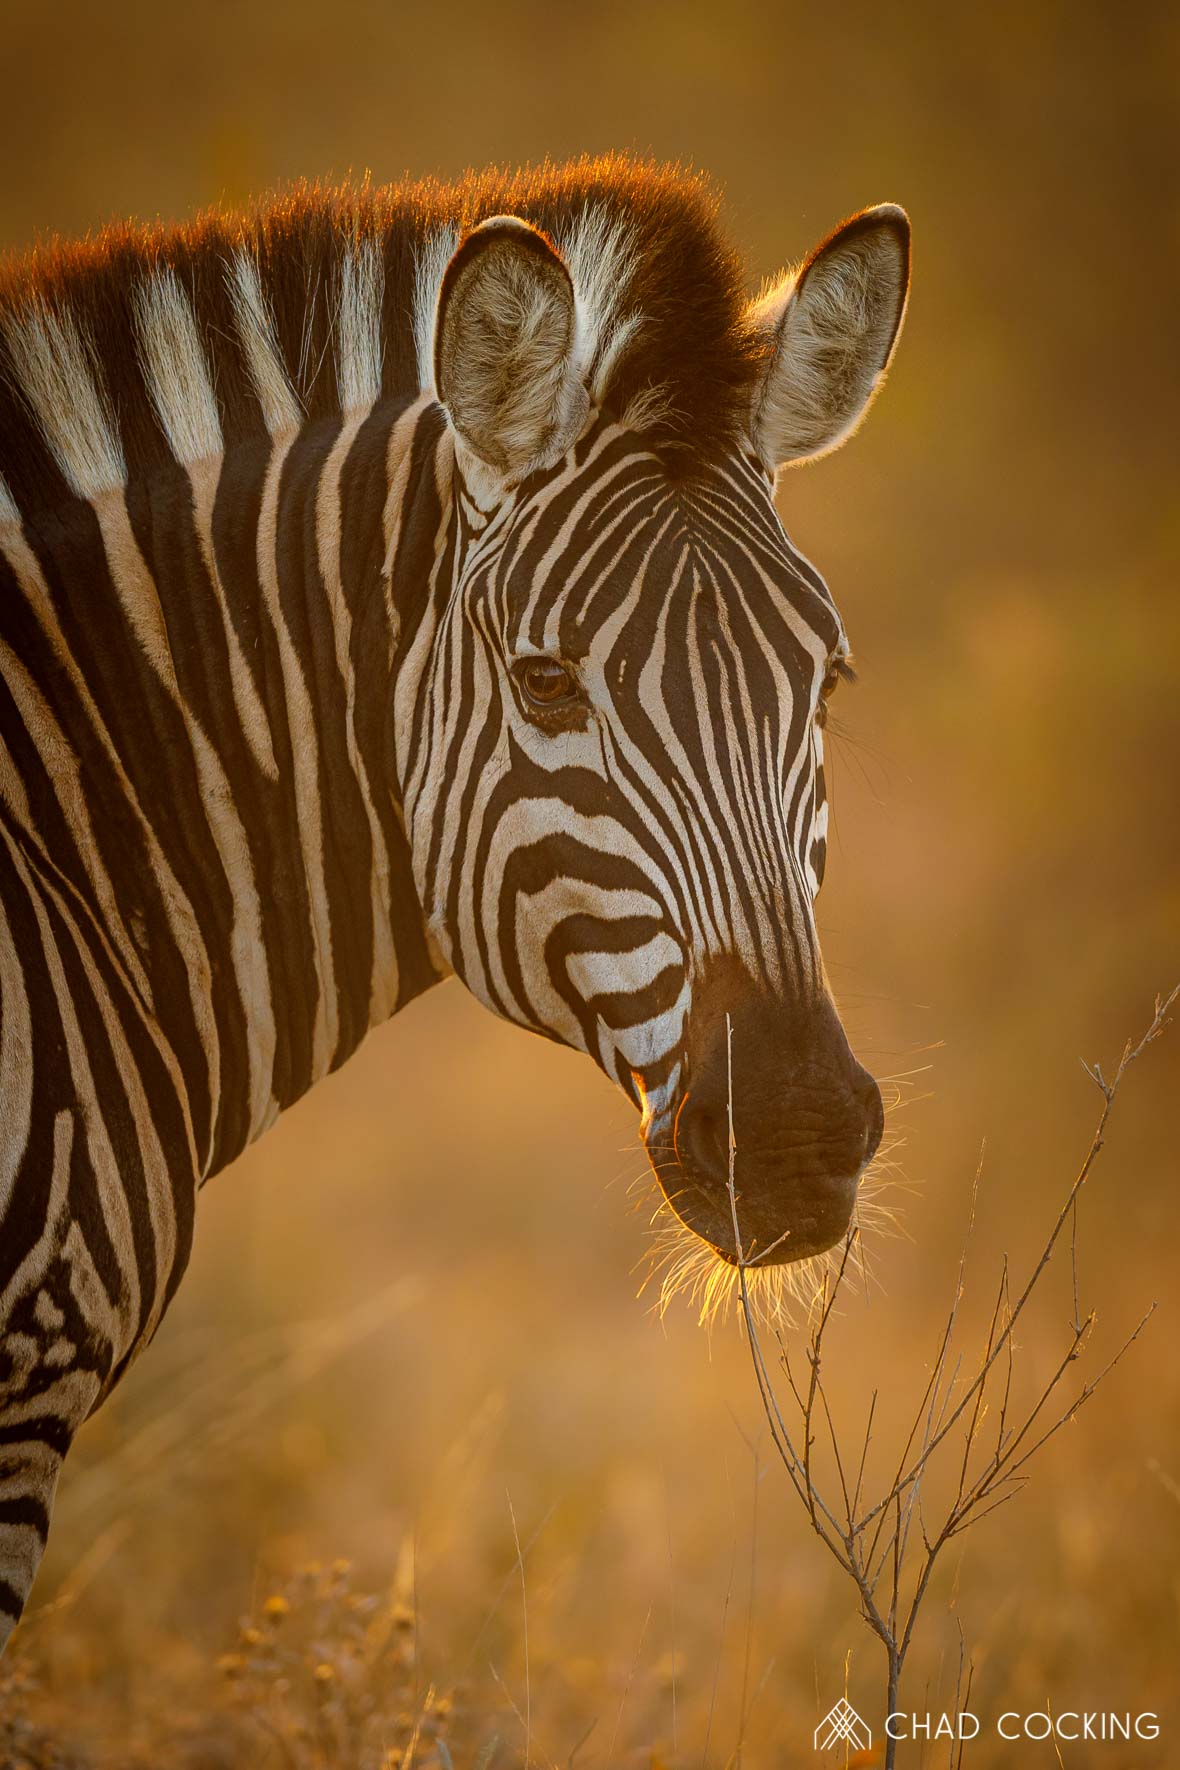 Photo credit: Chad Cocking | Portrait of a Zebra at Tanda Tula in the Timbavati Game Reserve, South Africa.